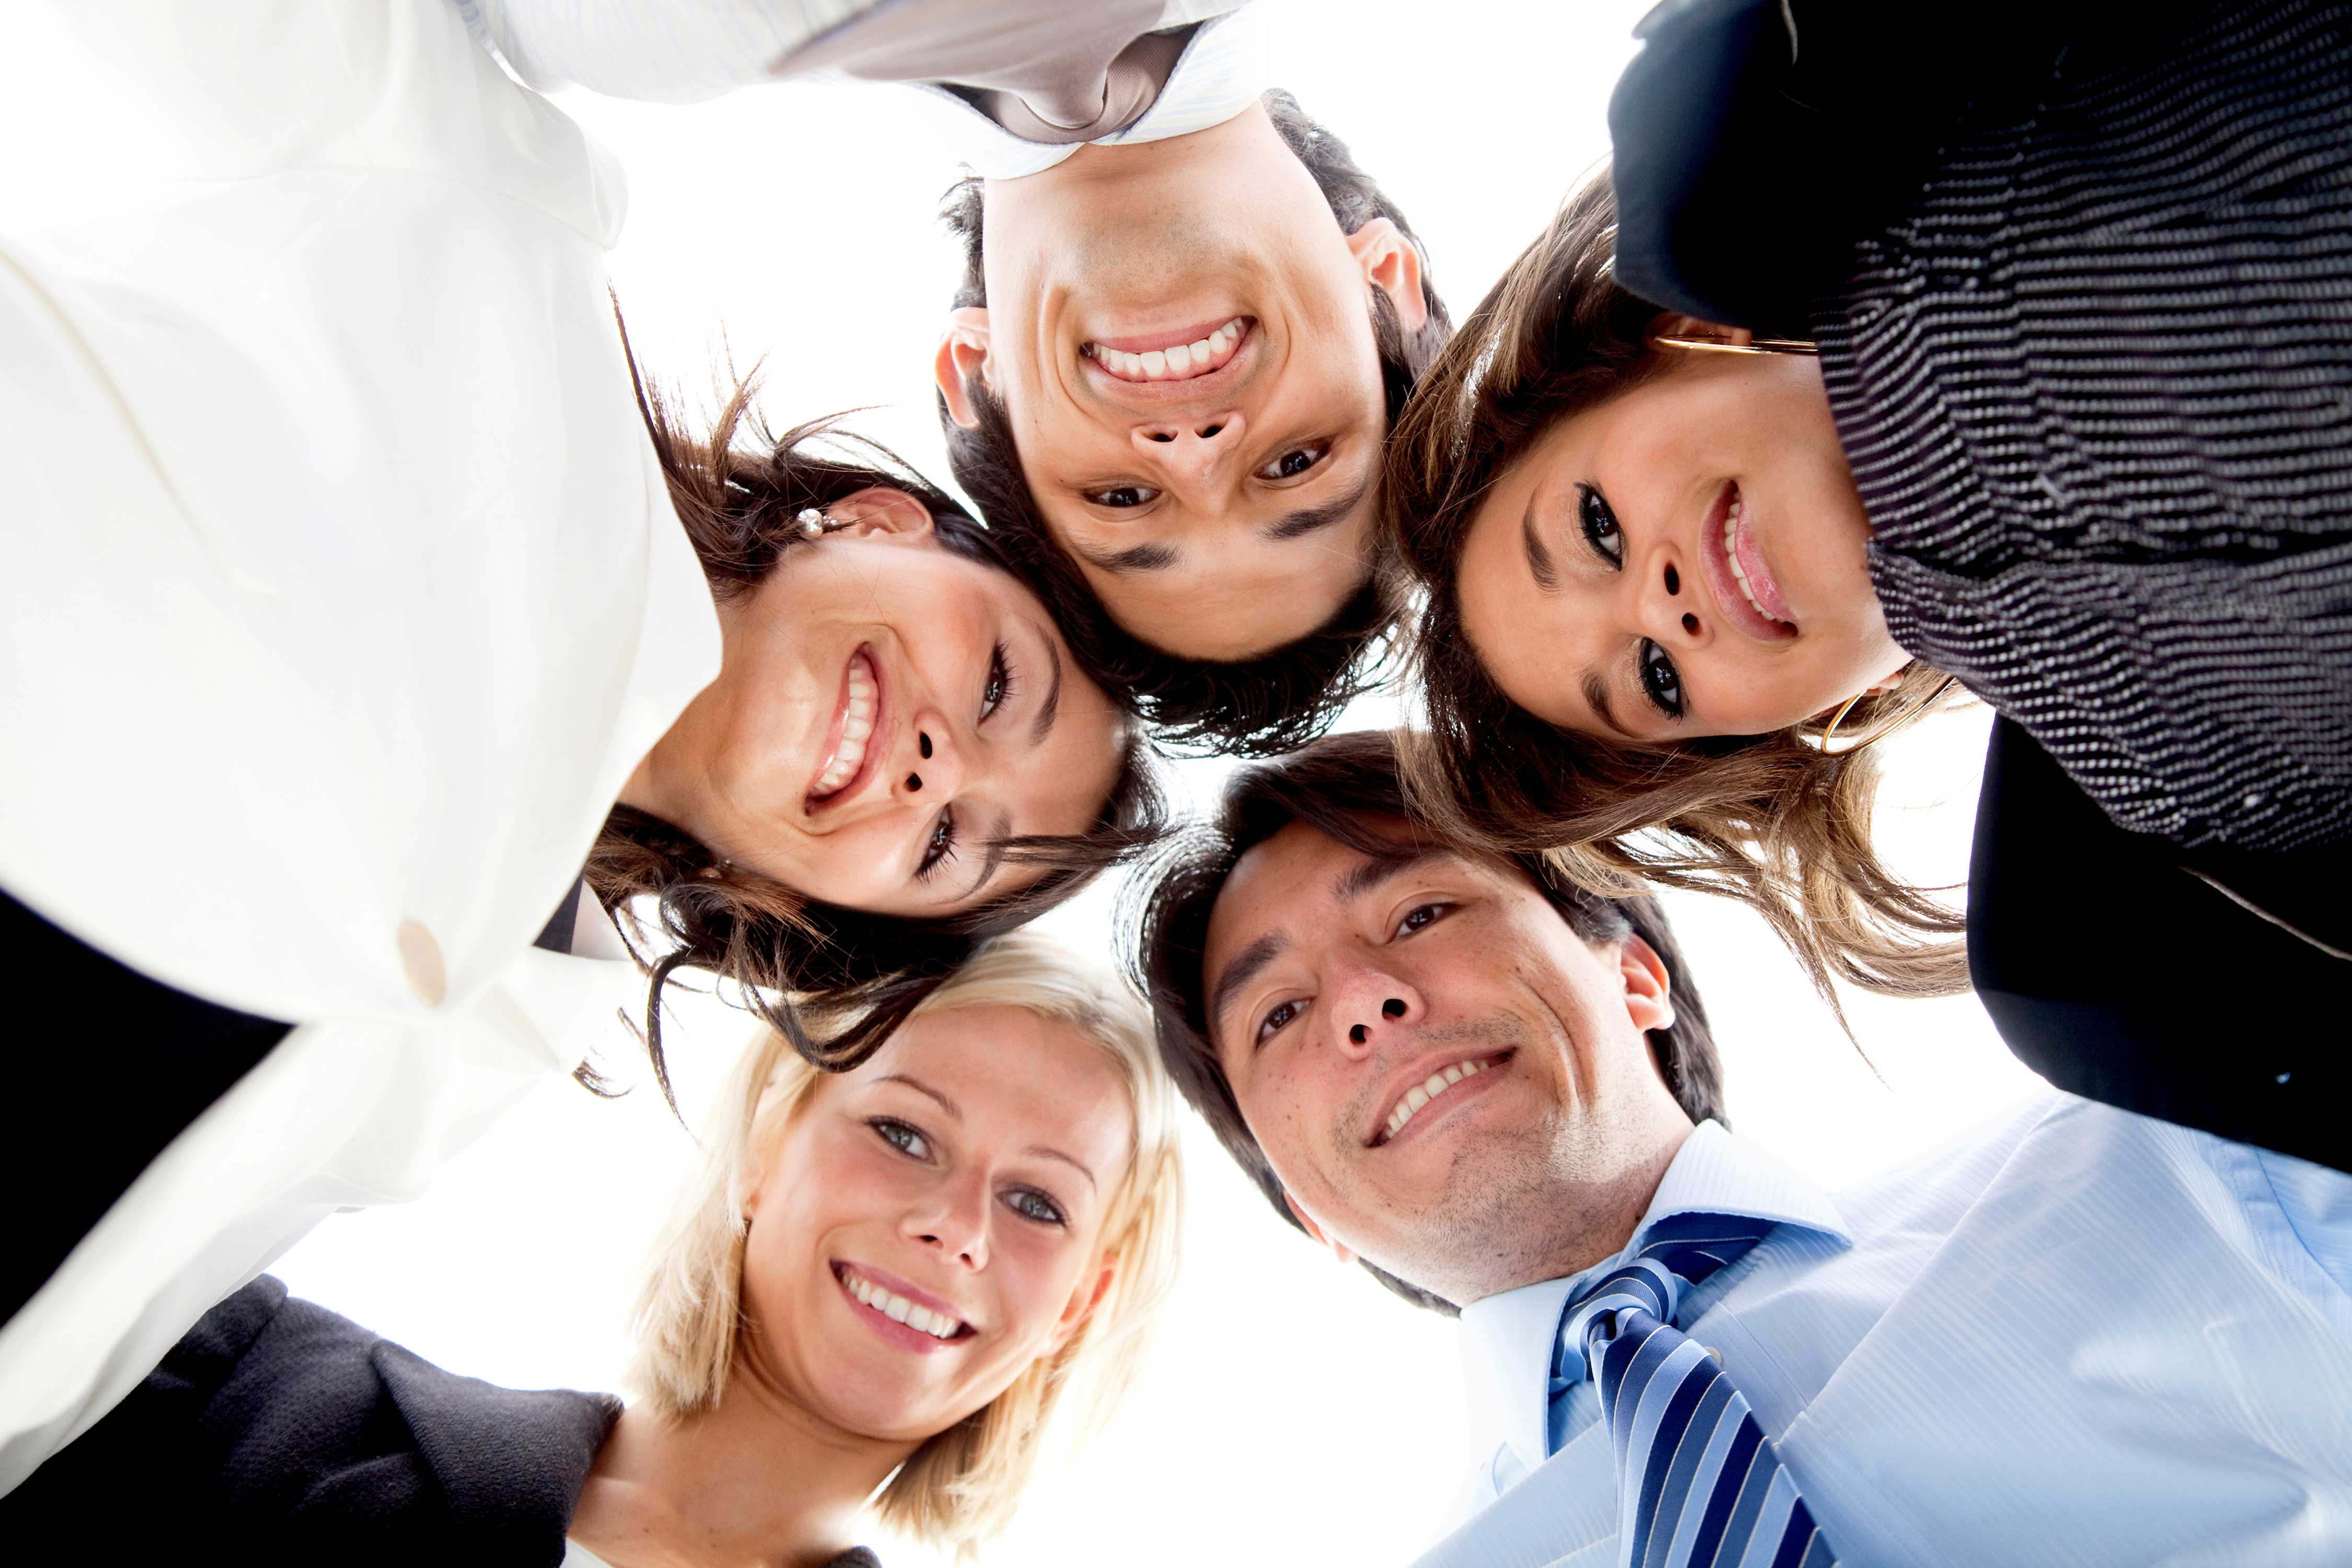 business professional association where referrals are priceless circle of trust